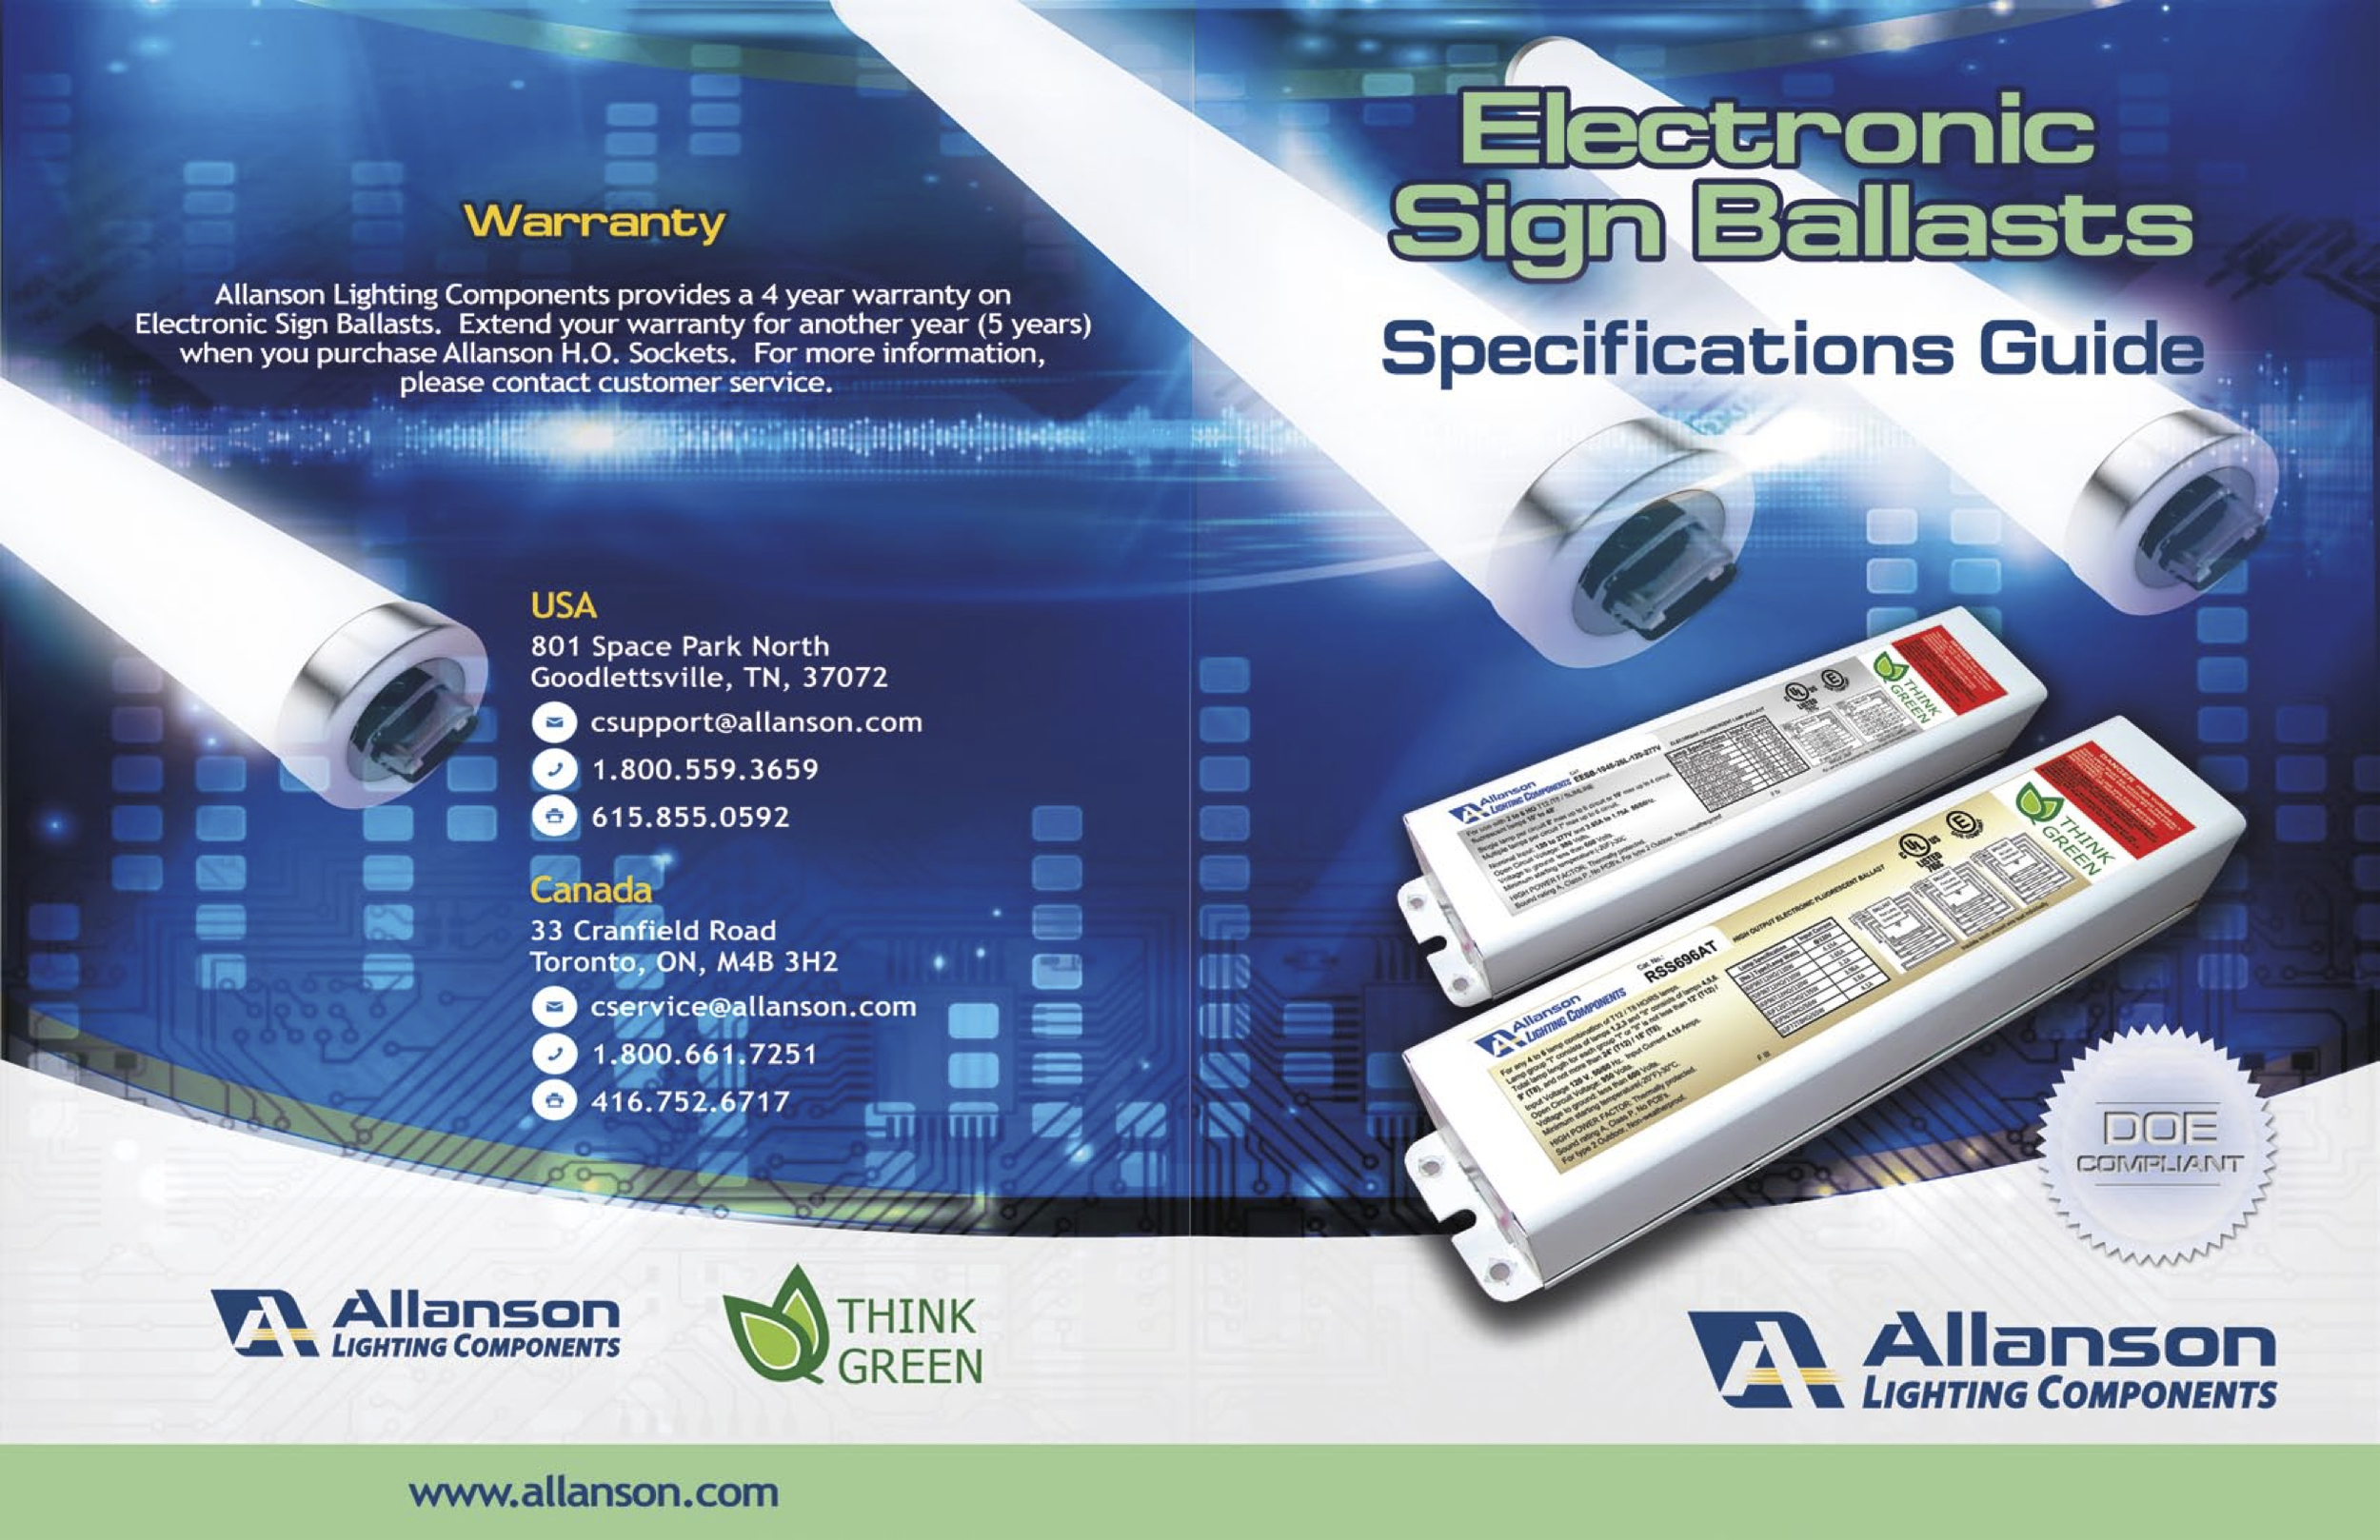 Allanson-Lighting-Components_Specifications-Guide_EESB-RSS2.jpg